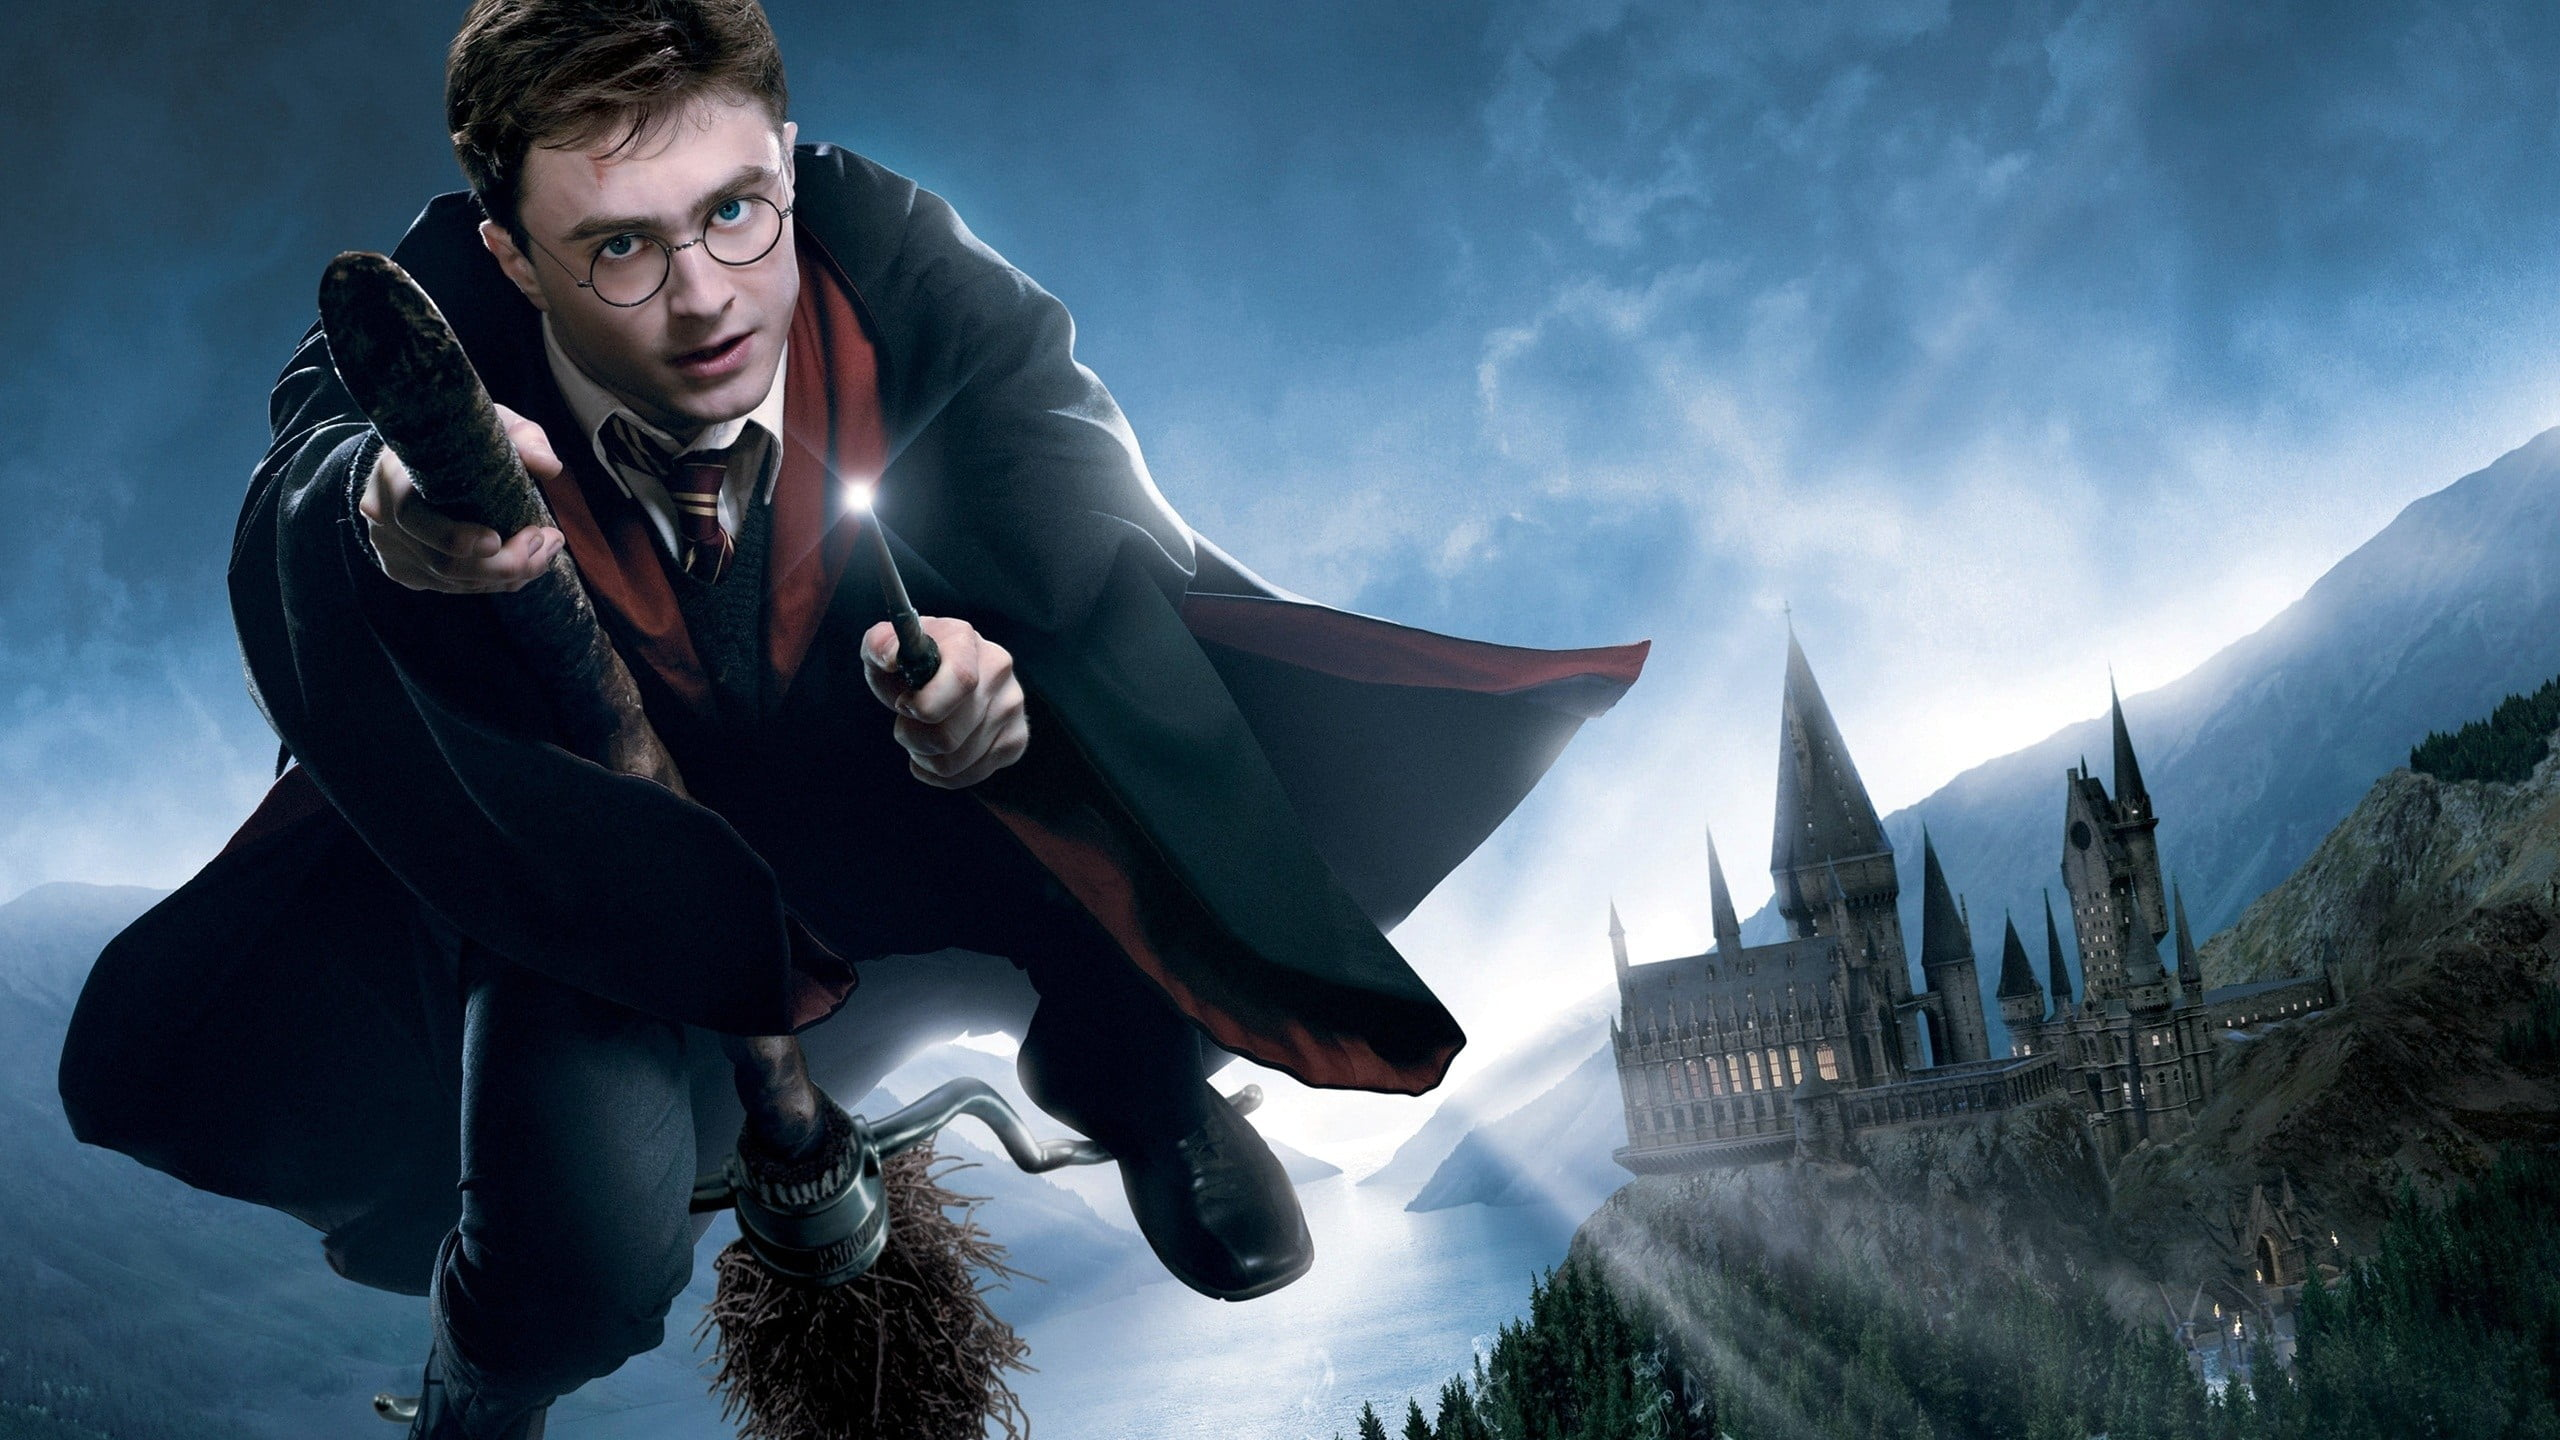 Harry Potter and the prisoner of azkaban poster HD wallpapers